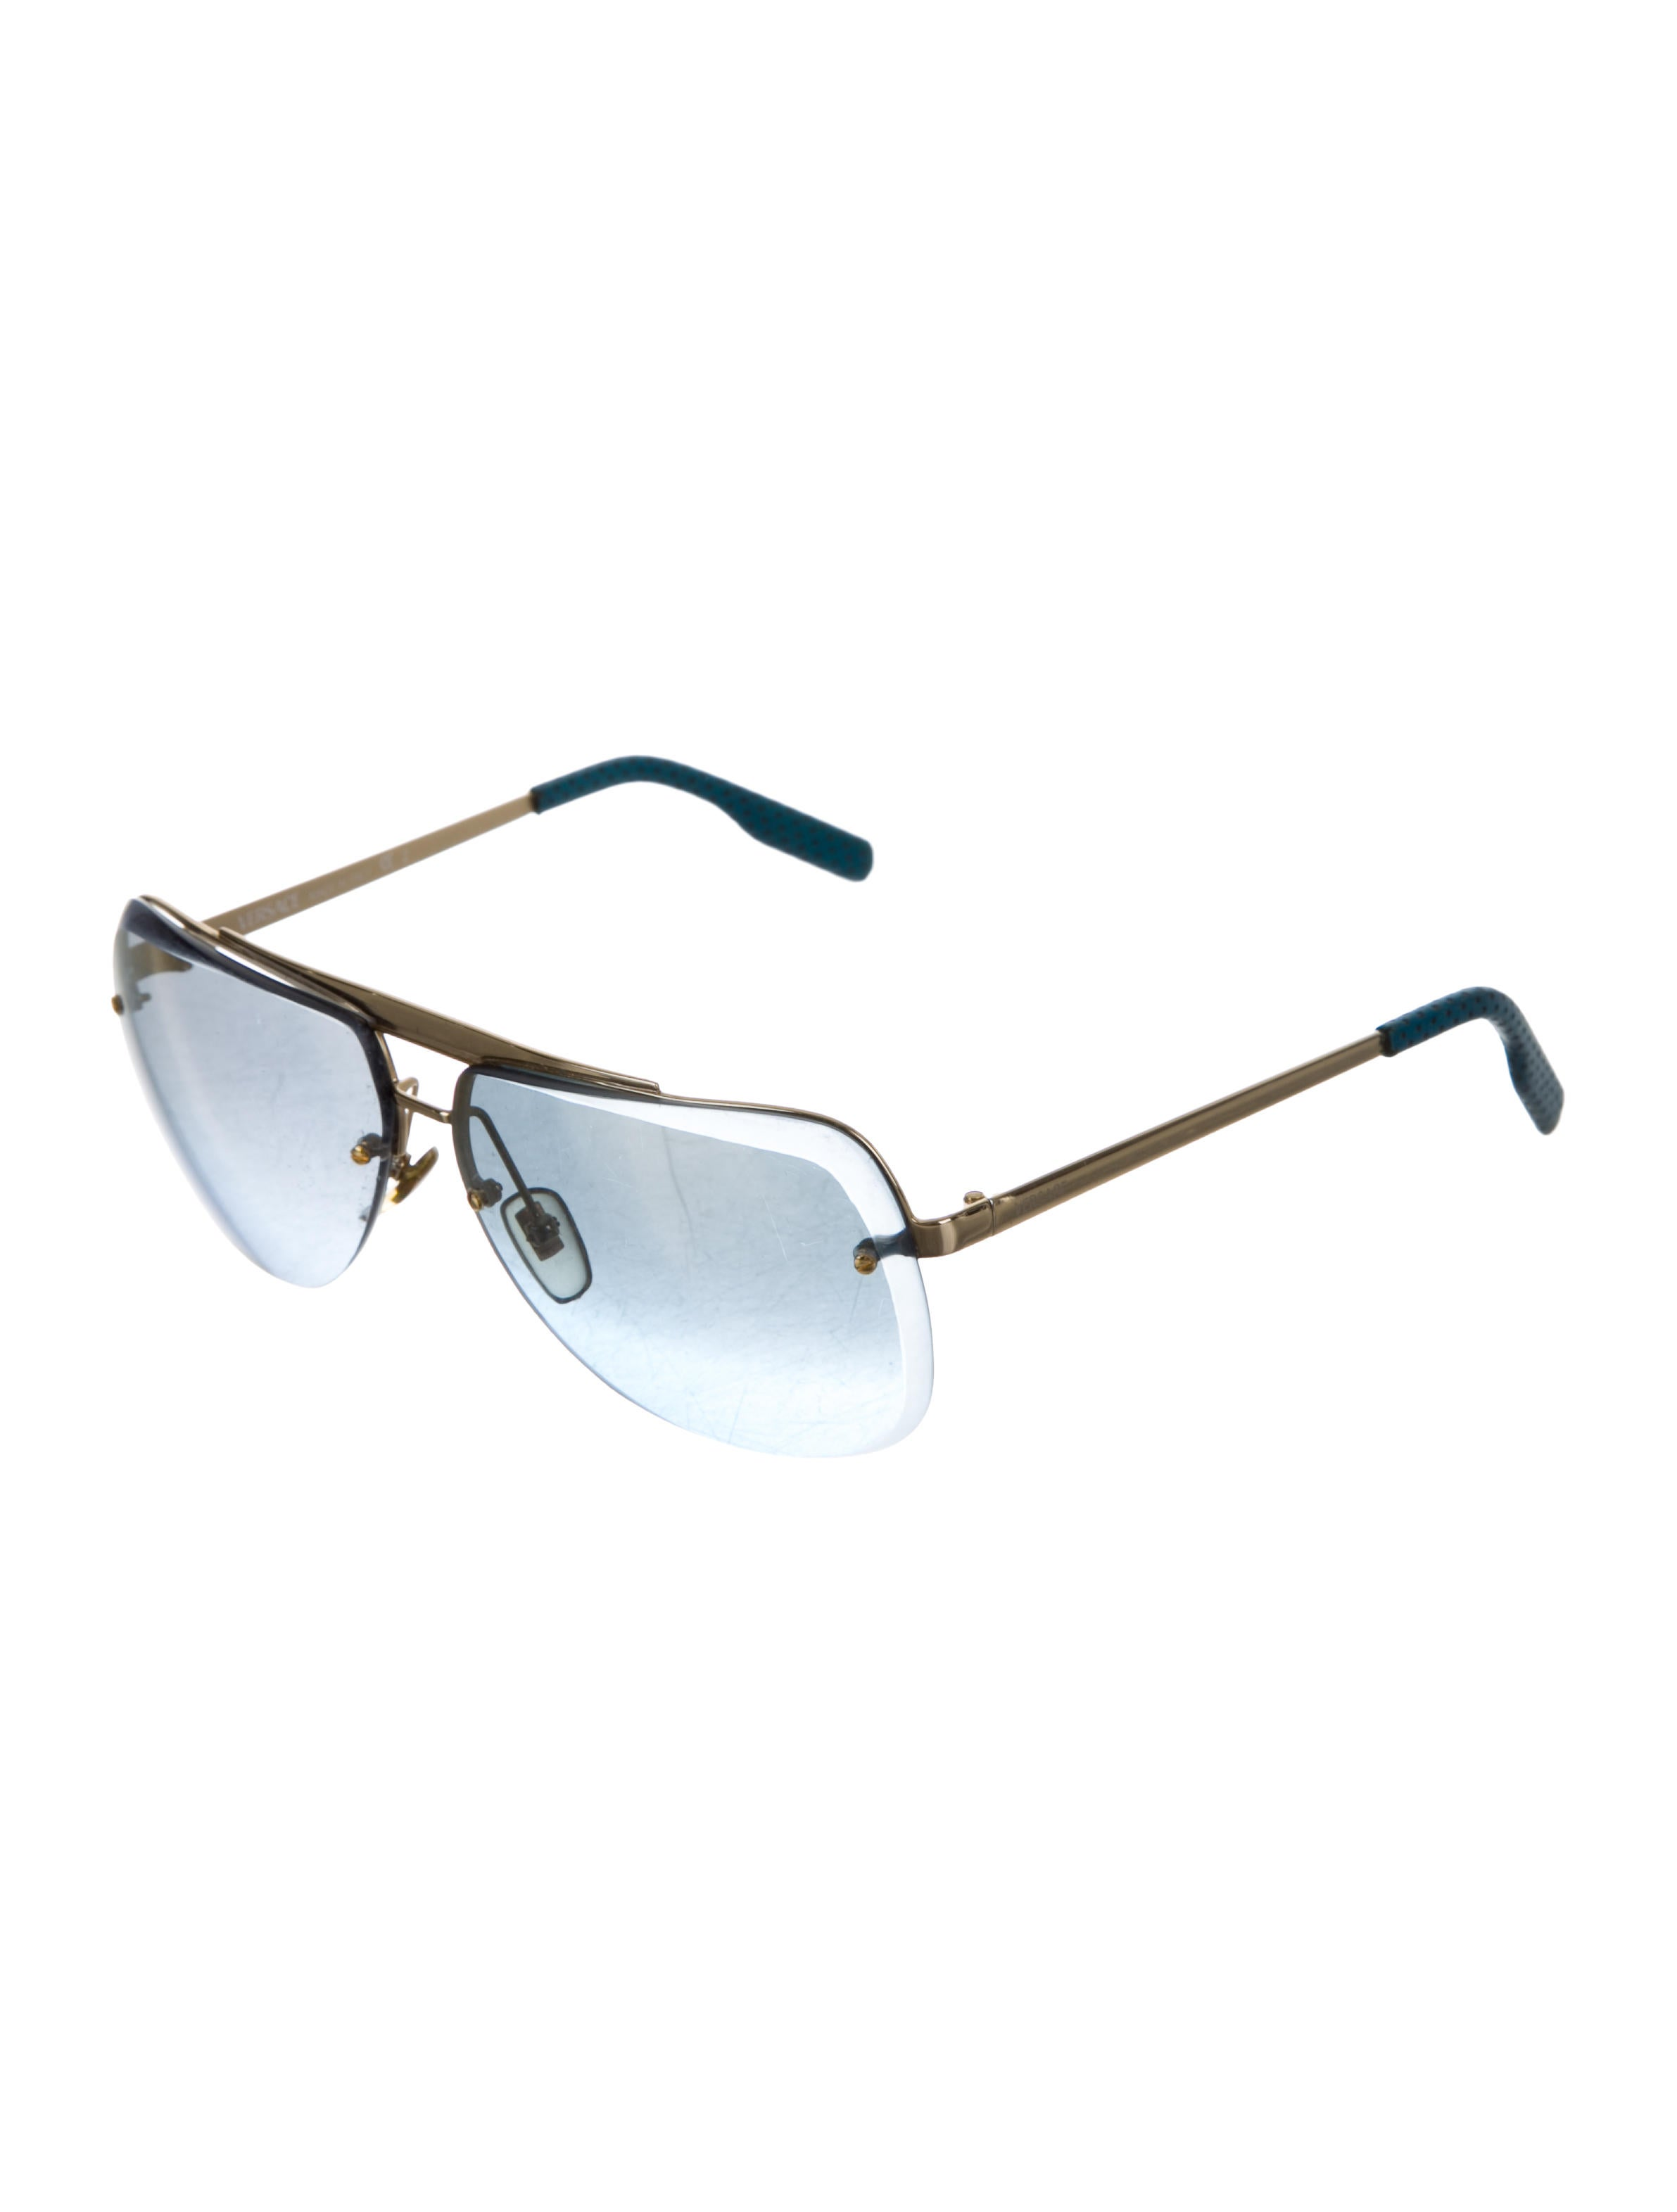 Versace Rimless Aviator Sunglasses Accessories  : VES291432enlarged from www.therealreal.com size 2383 x 3144 jpeg 105kB